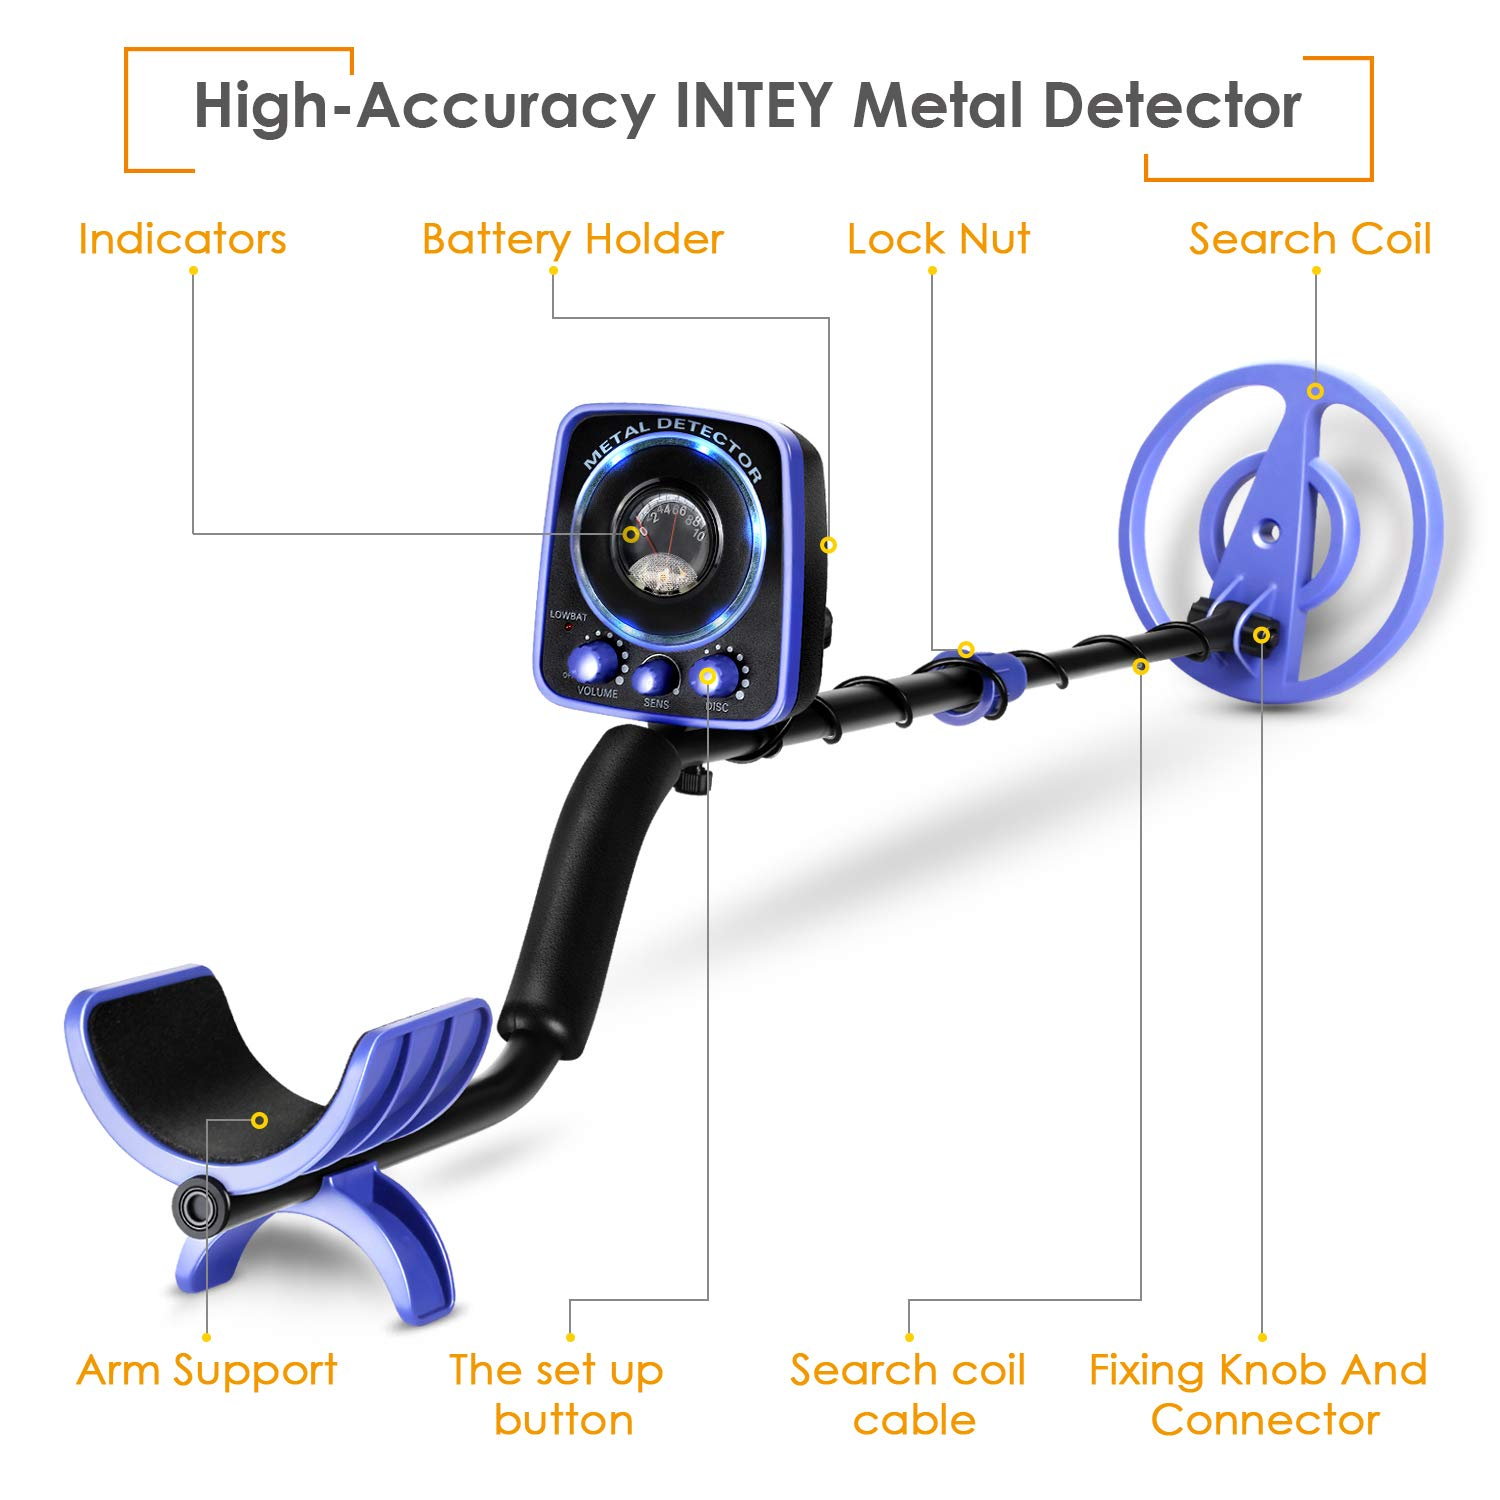 INTEY Upgraded Metal Detector Waterproof for Adults Kids Adjustable 35 -45 High Accuracy with LED Flash Light Two Mode Multi-Function Folding Shovel Black Detector